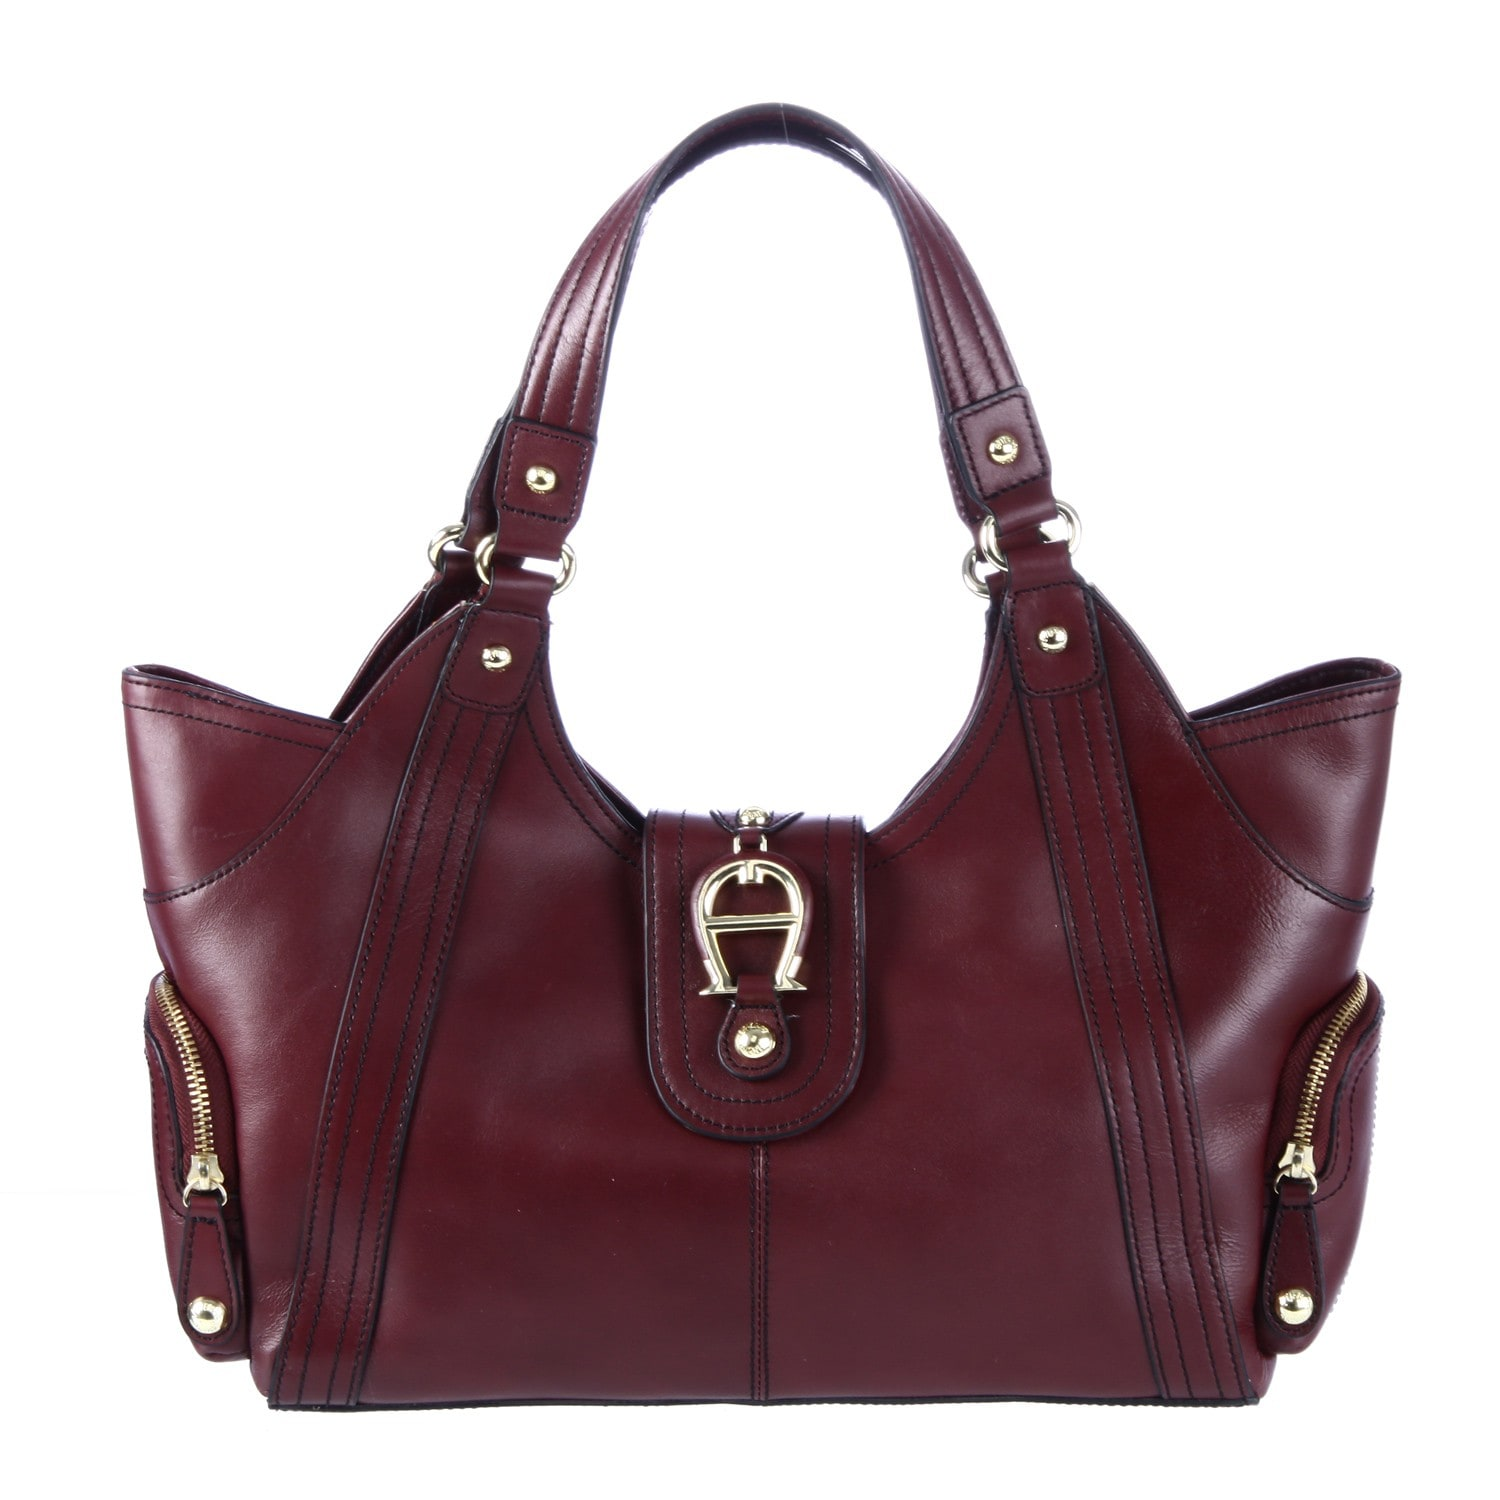 564c90eaeca Shop Etienne Aigner Montclair Leather Tote Bag - Free Shipping Today -  Overstock - 6467992